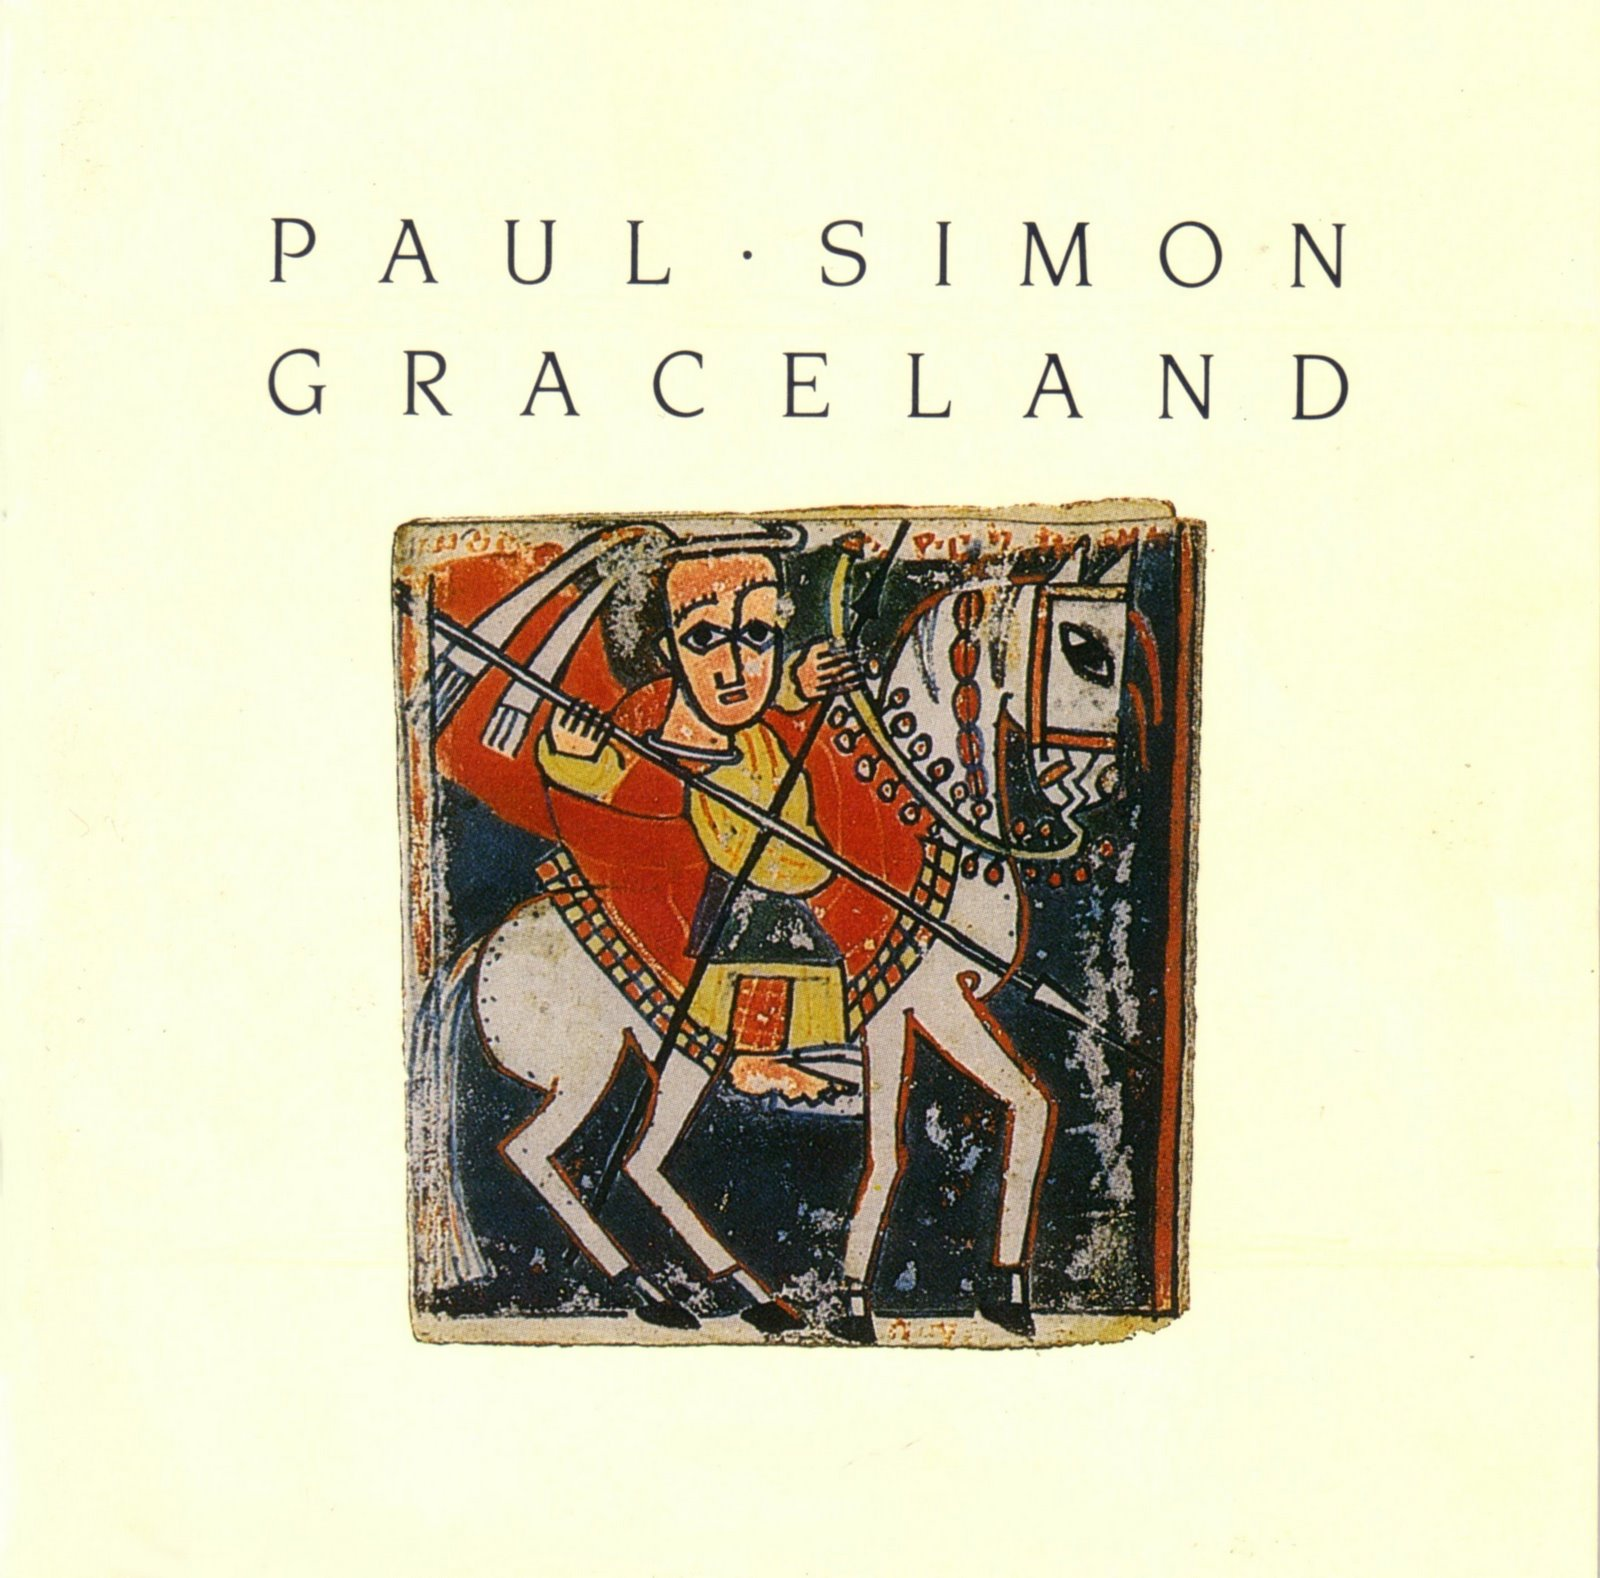 Paul Simon - Graceland - 25th Anniversary Edition